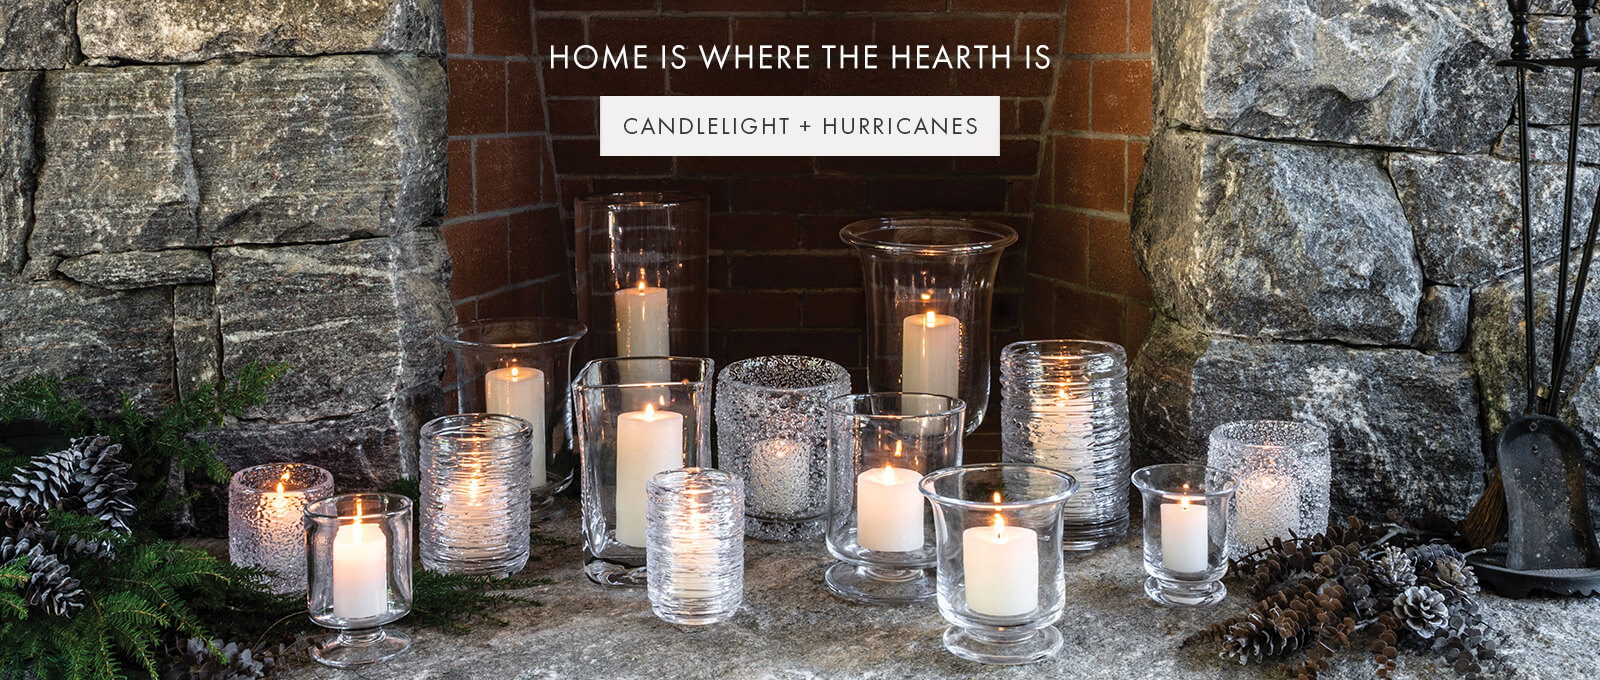 HOME IS WHERE THE HEARTH IS — CANDLELIGHT + HURRICANES >